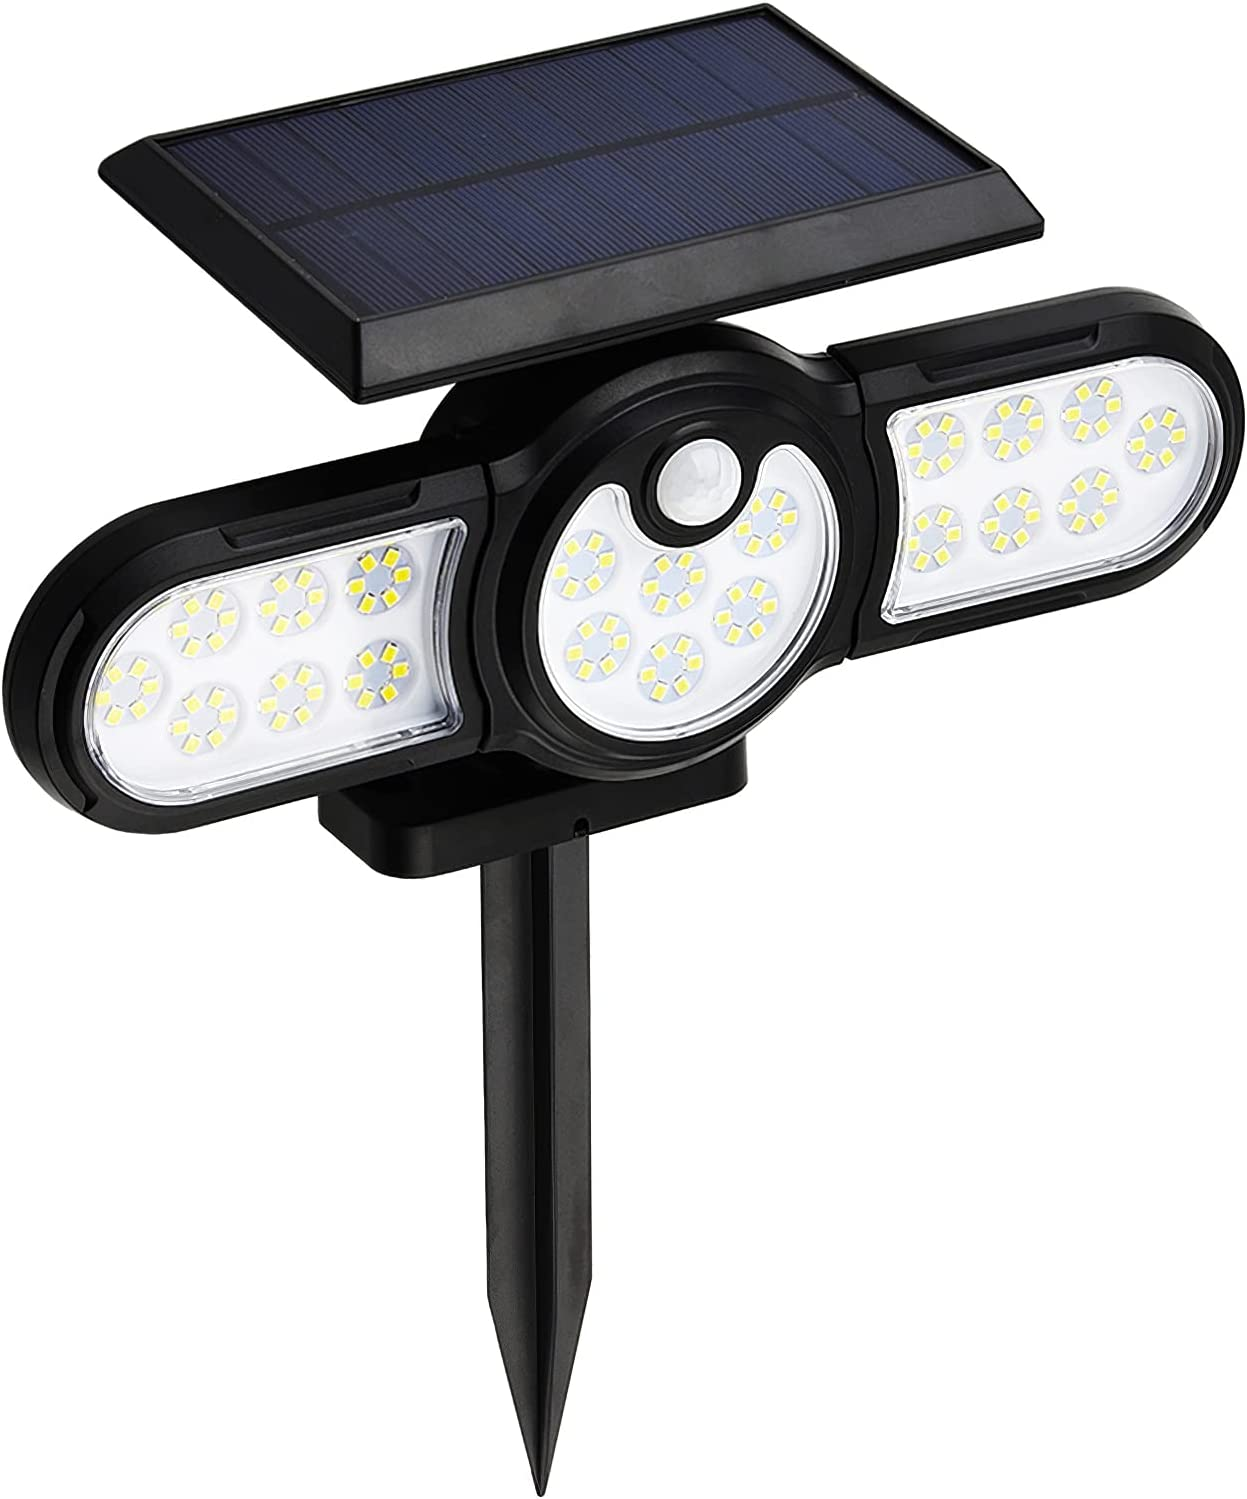 specialty Challenge the lowest price of Japan ☆ shop Donpow 120 LED Solar Security Light Easy 3 Install to Modes So